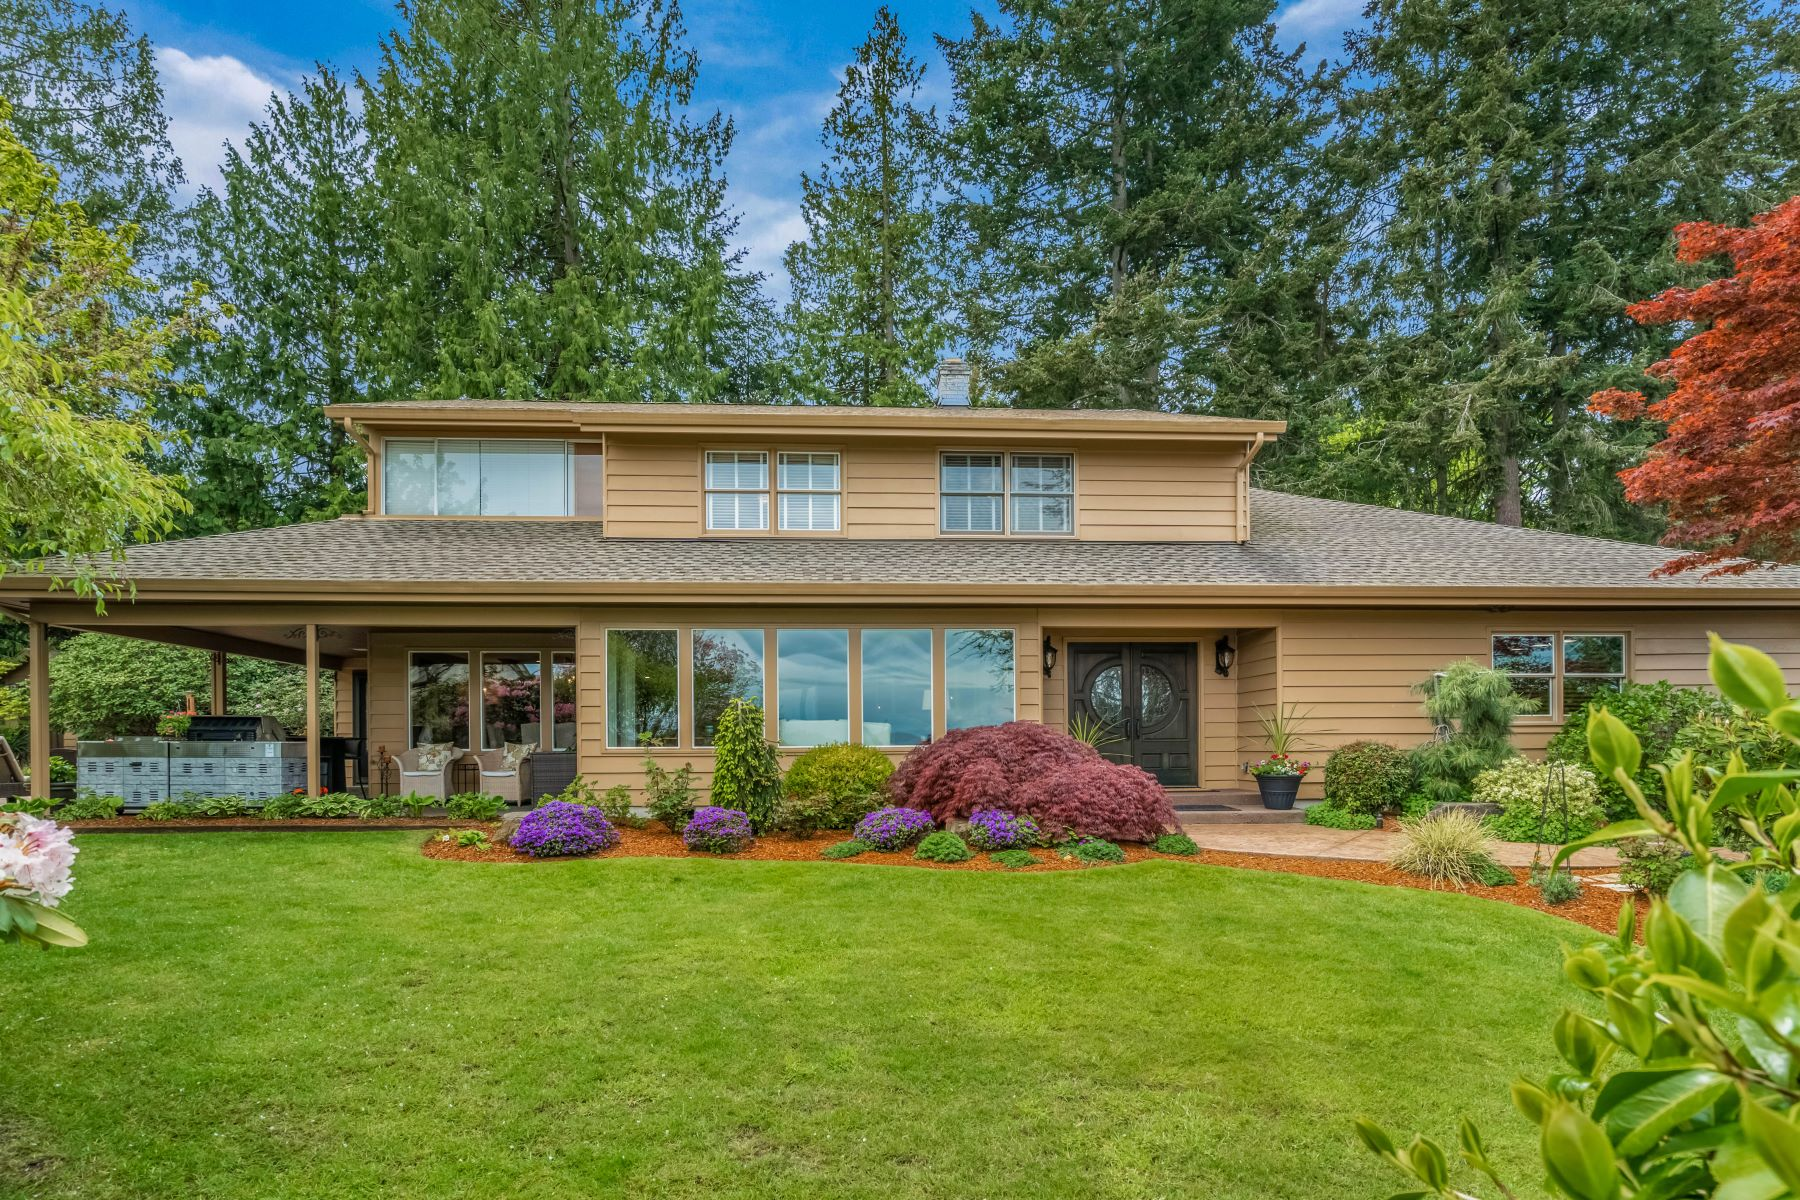 Single Family Homes for Sale at ColvosViews.com 2410 55th St Ct NW, Gig Harbor, Washington 98335 United States